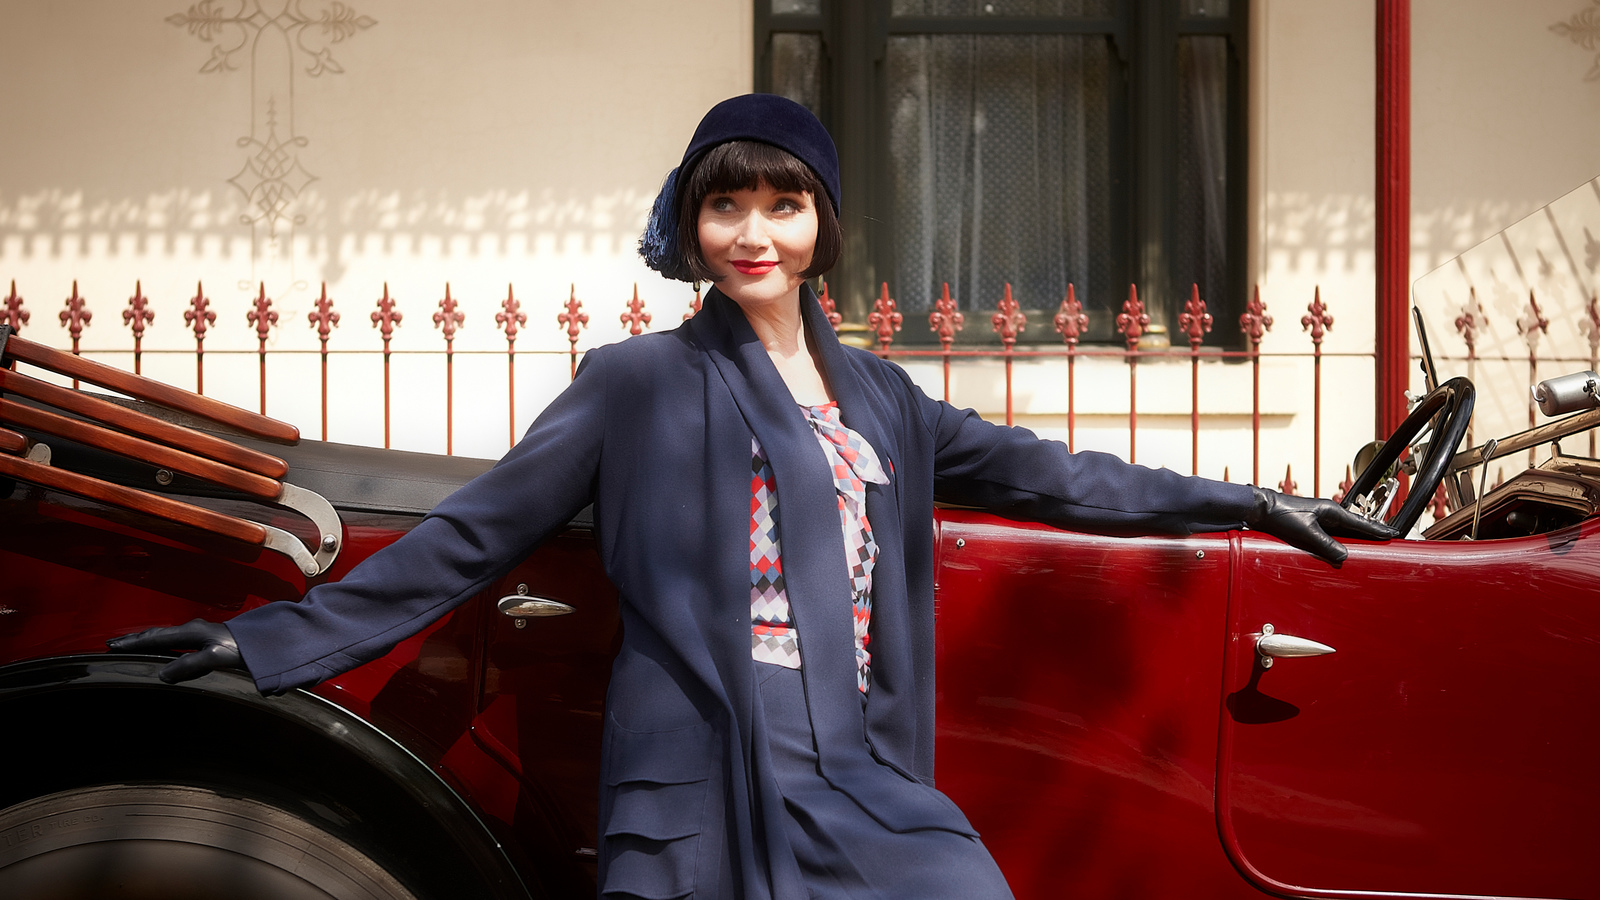 miss fishers murder mysteries gay